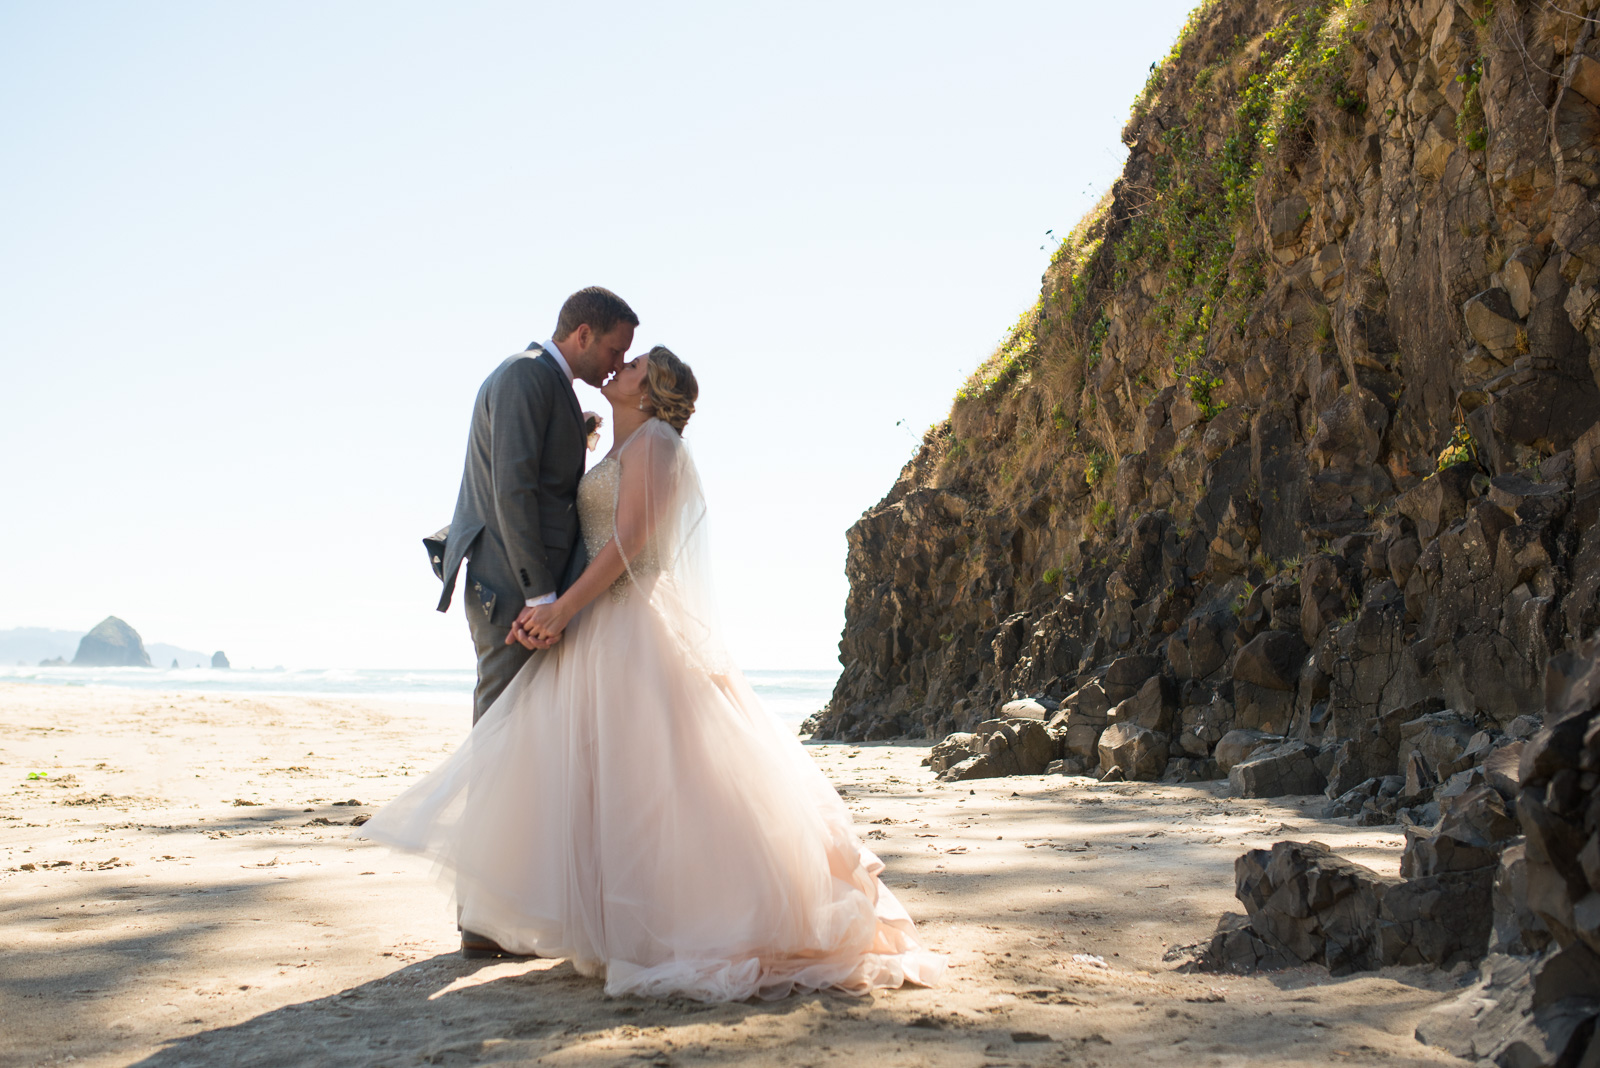 victoria-wedding-photographers-cannon-beach-oregon-wedding-24.jpg